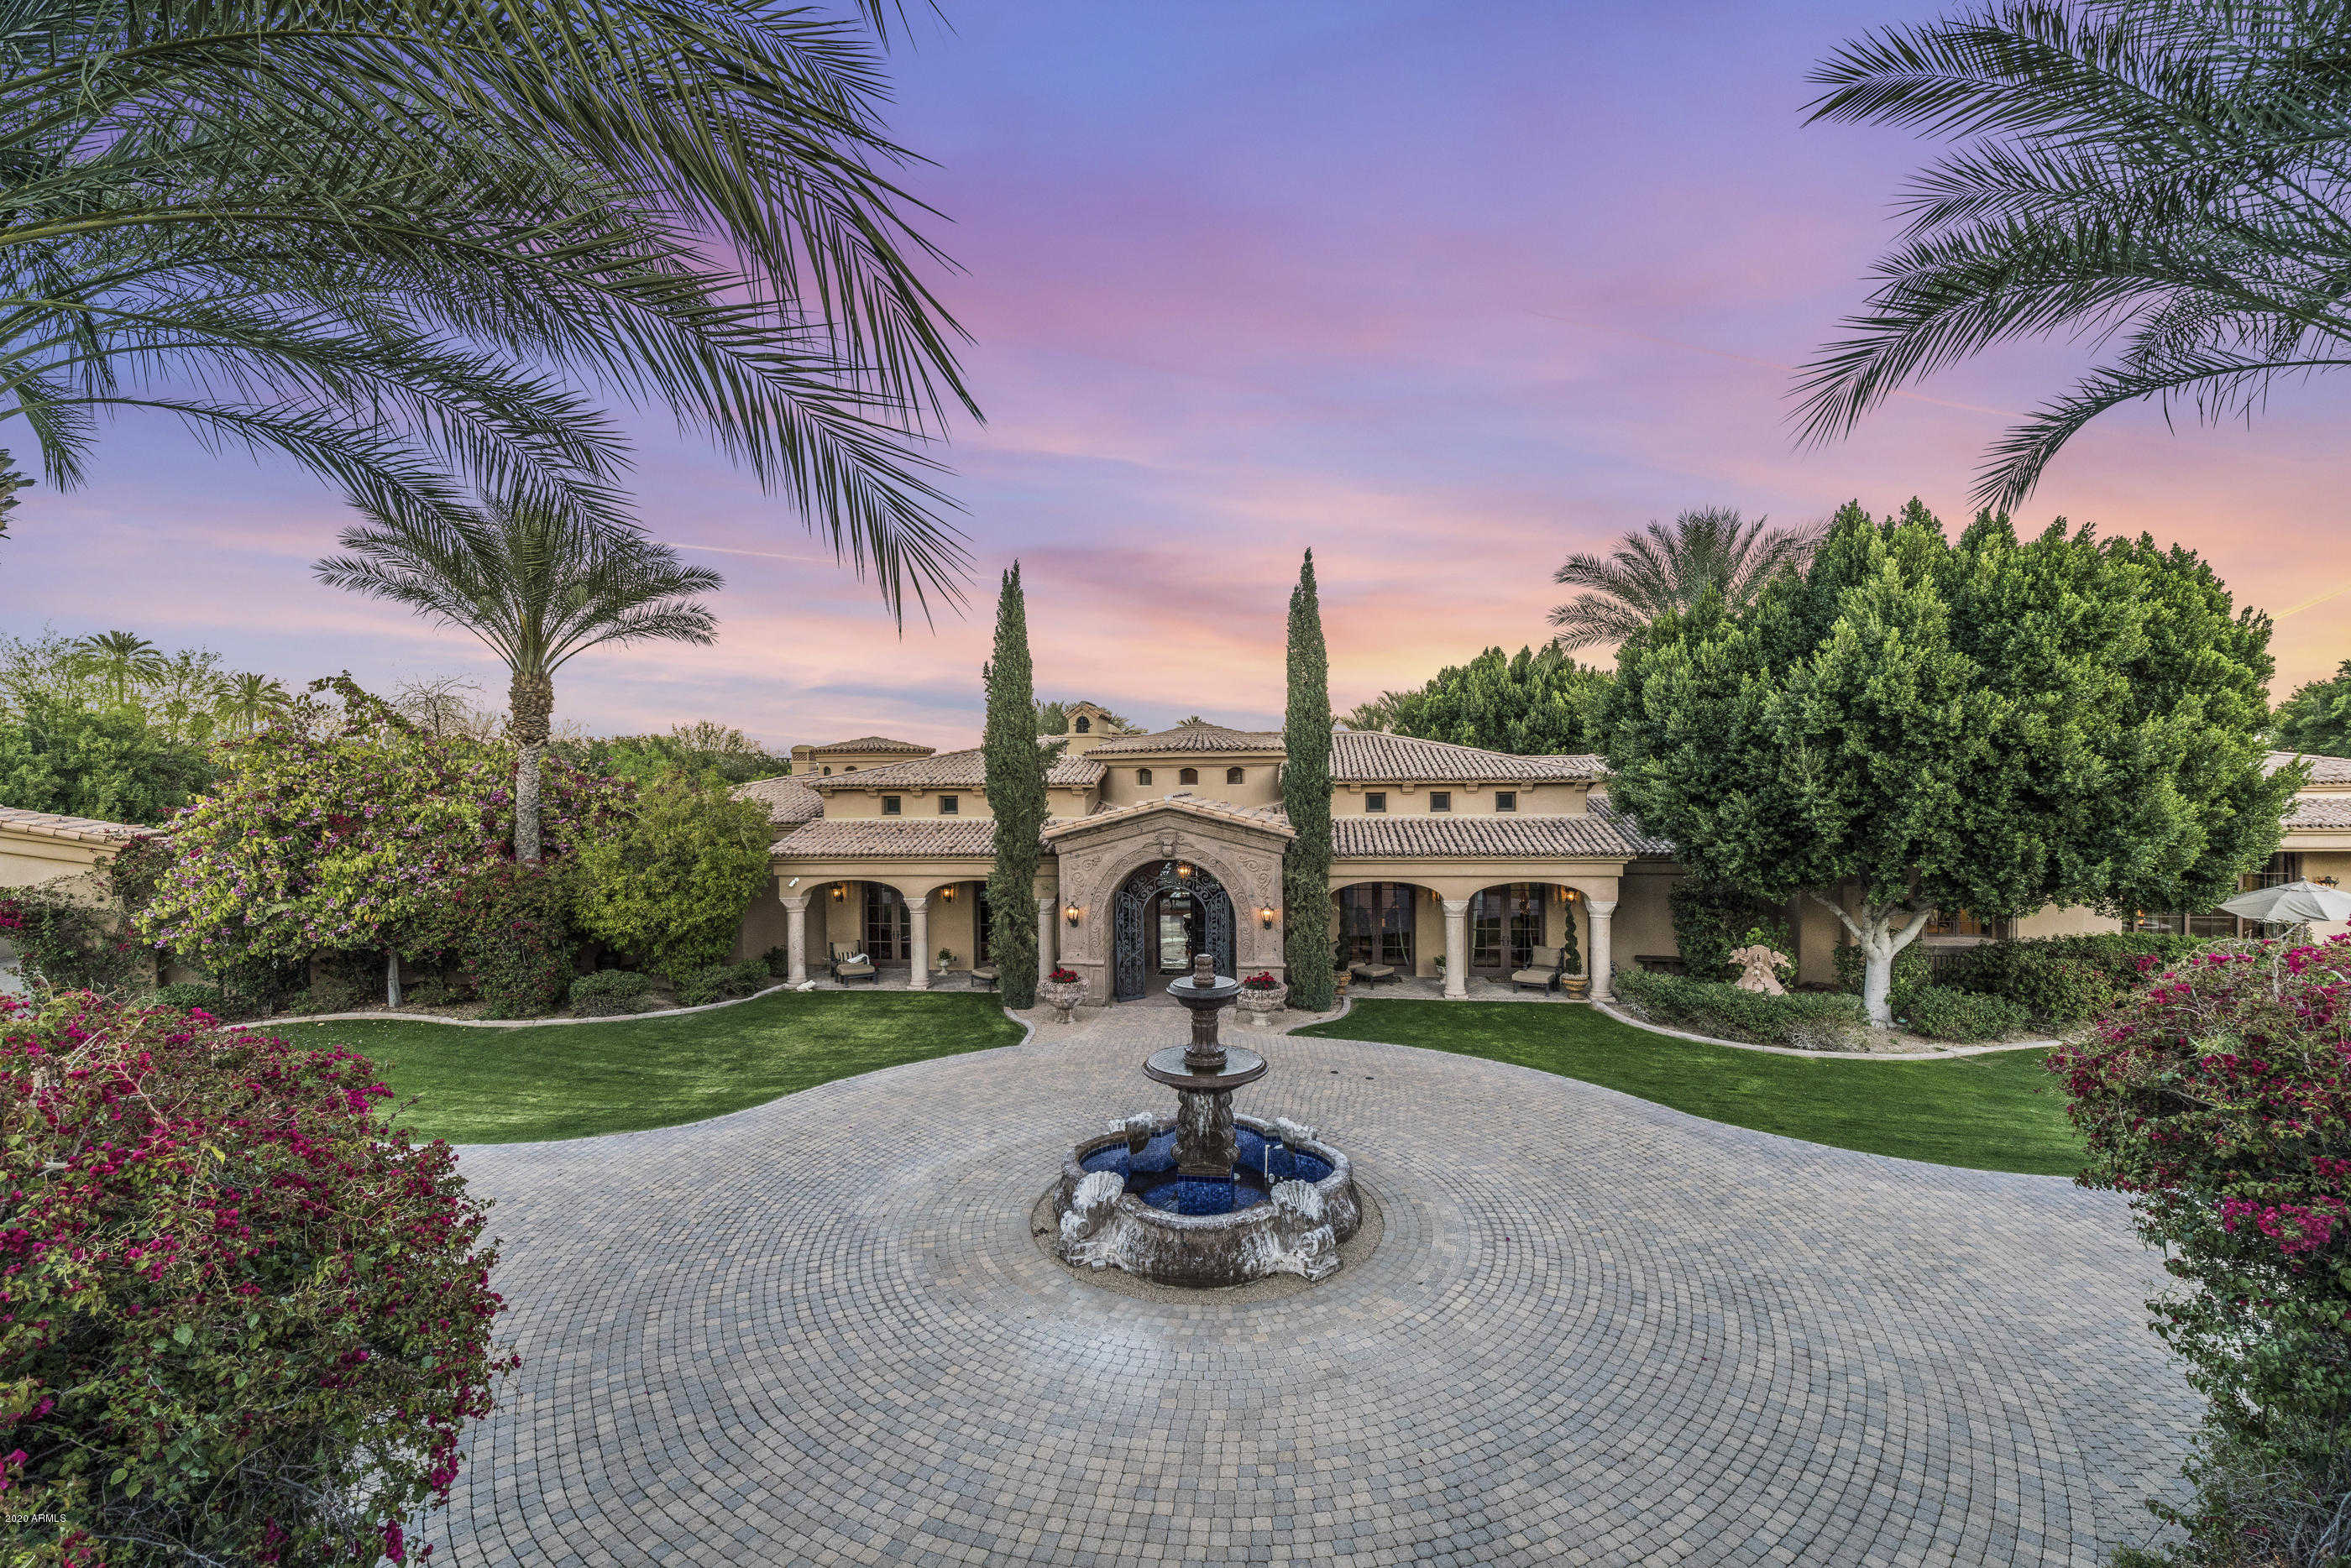 $8,200,000 - 7Br/11Ba - Home for Sale in Camelback Lands, Paradise Valley